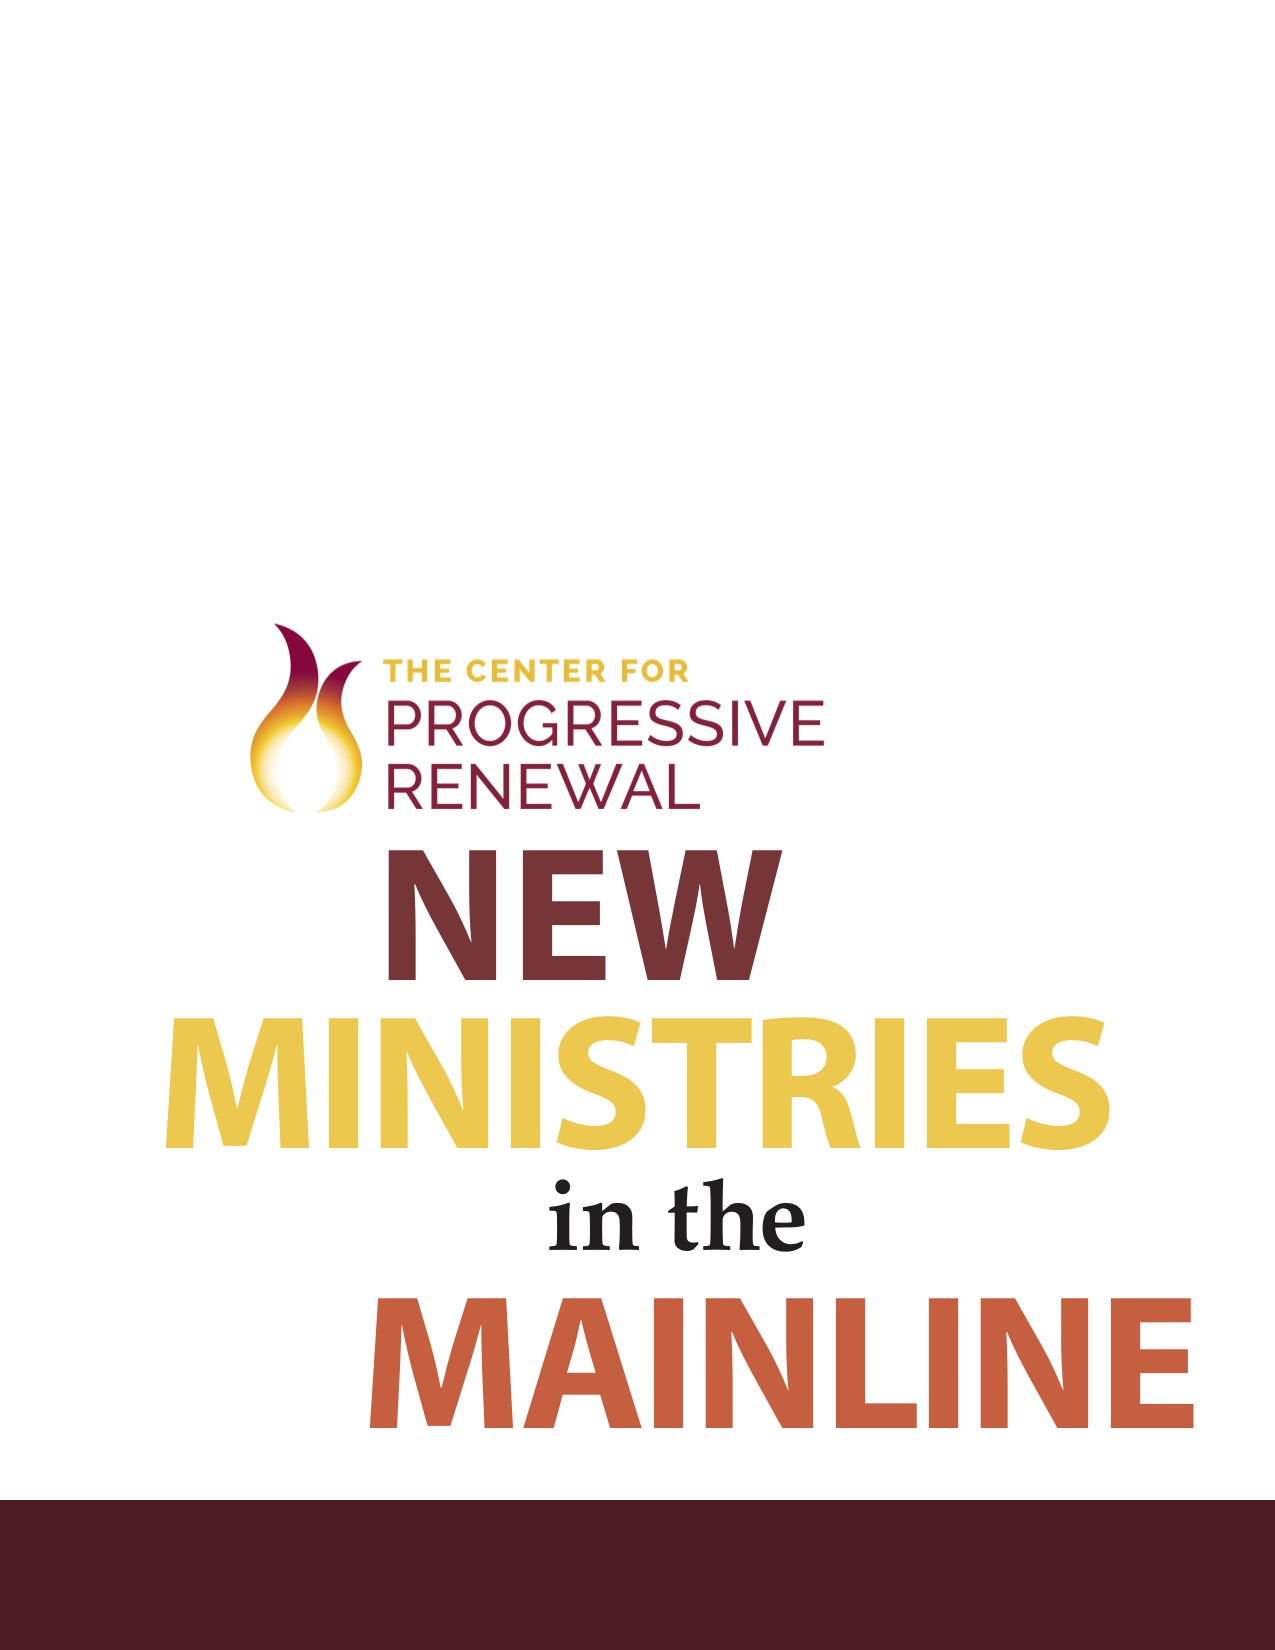 New Ministries Summary Report - A vibrant future for mainline Christianity depends, to a significant degree, on starting new ministries. That's why the Ecumenical Partners in Outreach collaborated with the Center for Progressive Renewal to conduct the largest study of church planting activities in the major mainline churches of the US and Canada in this century.That two-year study of 260 ministries has just been completed, and the results are telling. If you've been charged with starting a ministry, managing a ministry for your wider church body, creating a denominational group to support a new ministry or you simply want to know more about church planting, read on to discover what is out there and what is growing and what we're learning.